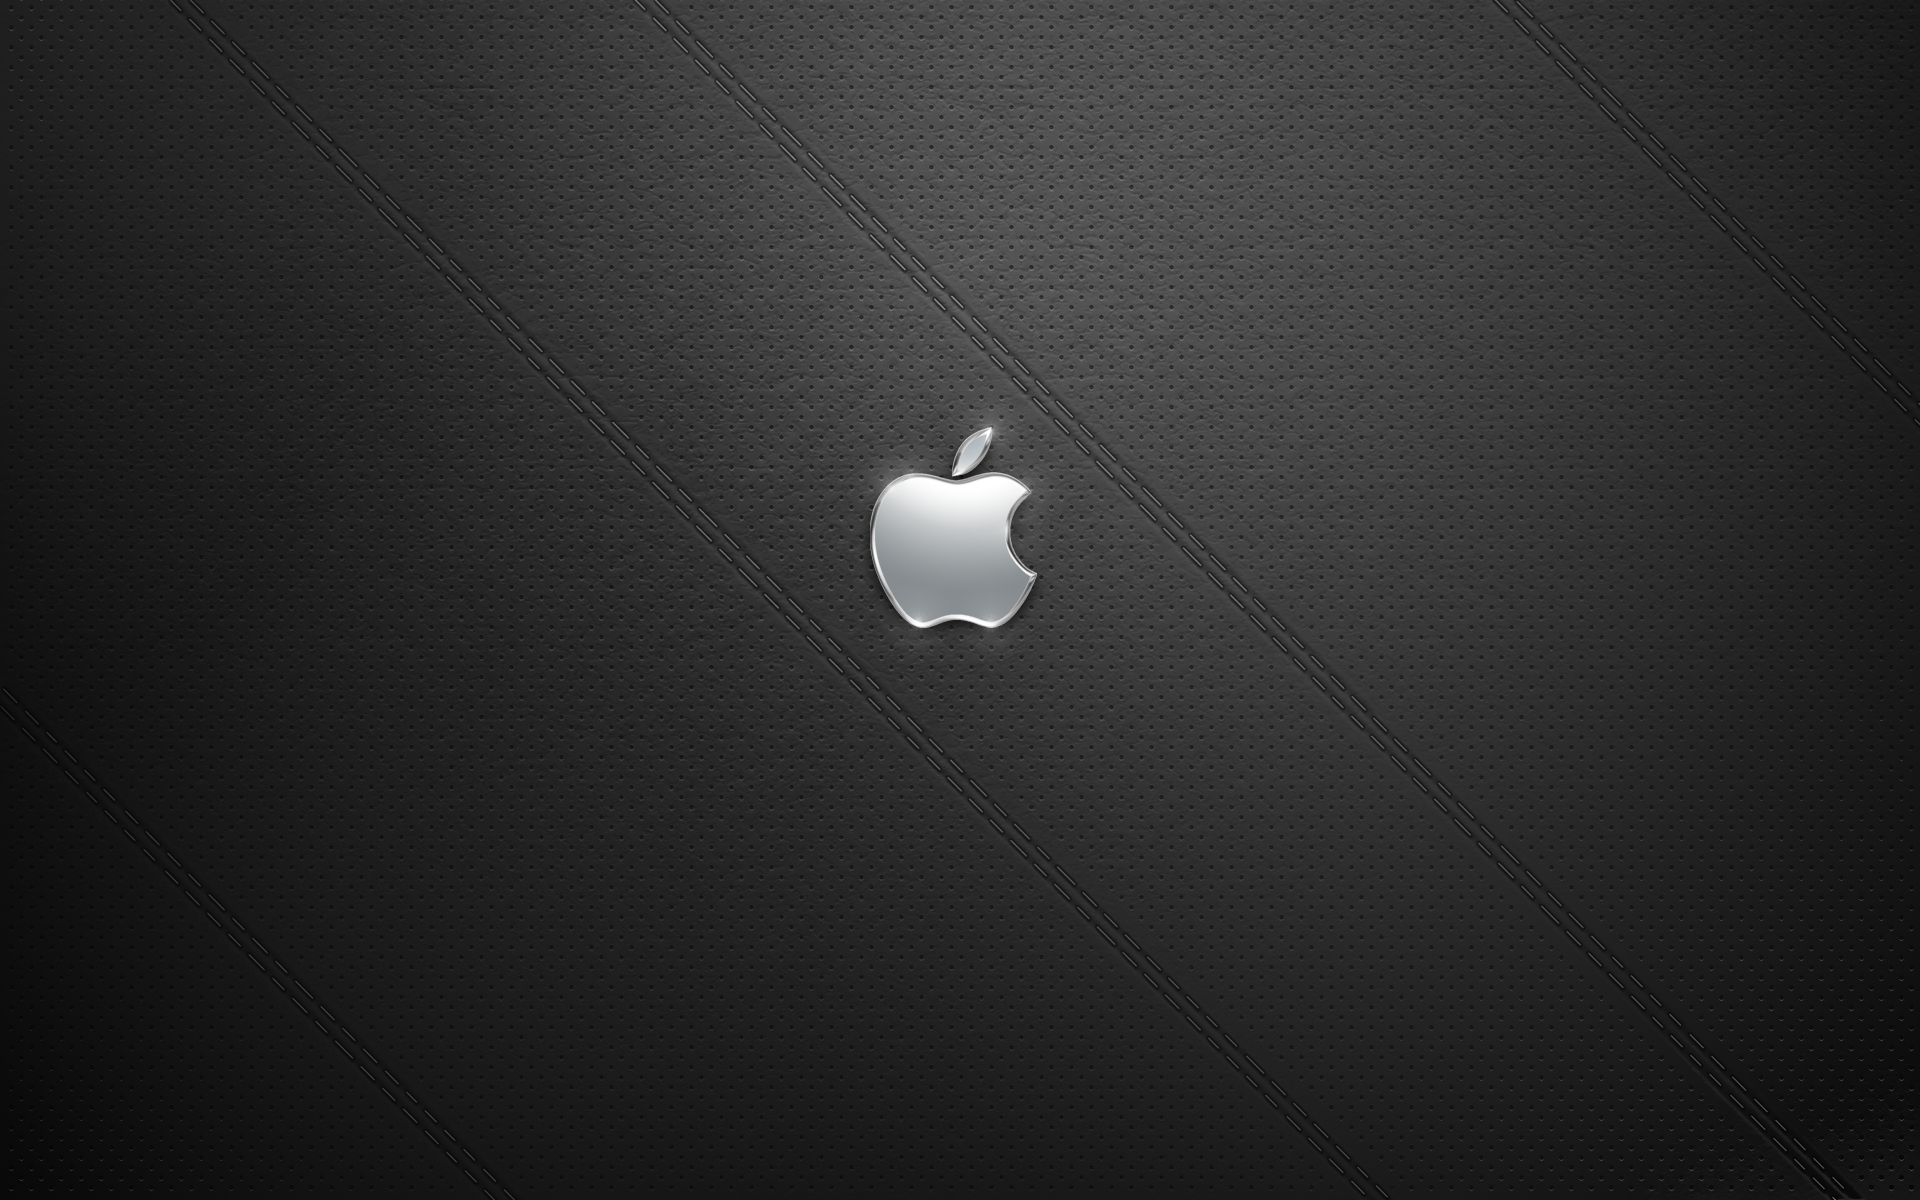 Black leather apple desktop background